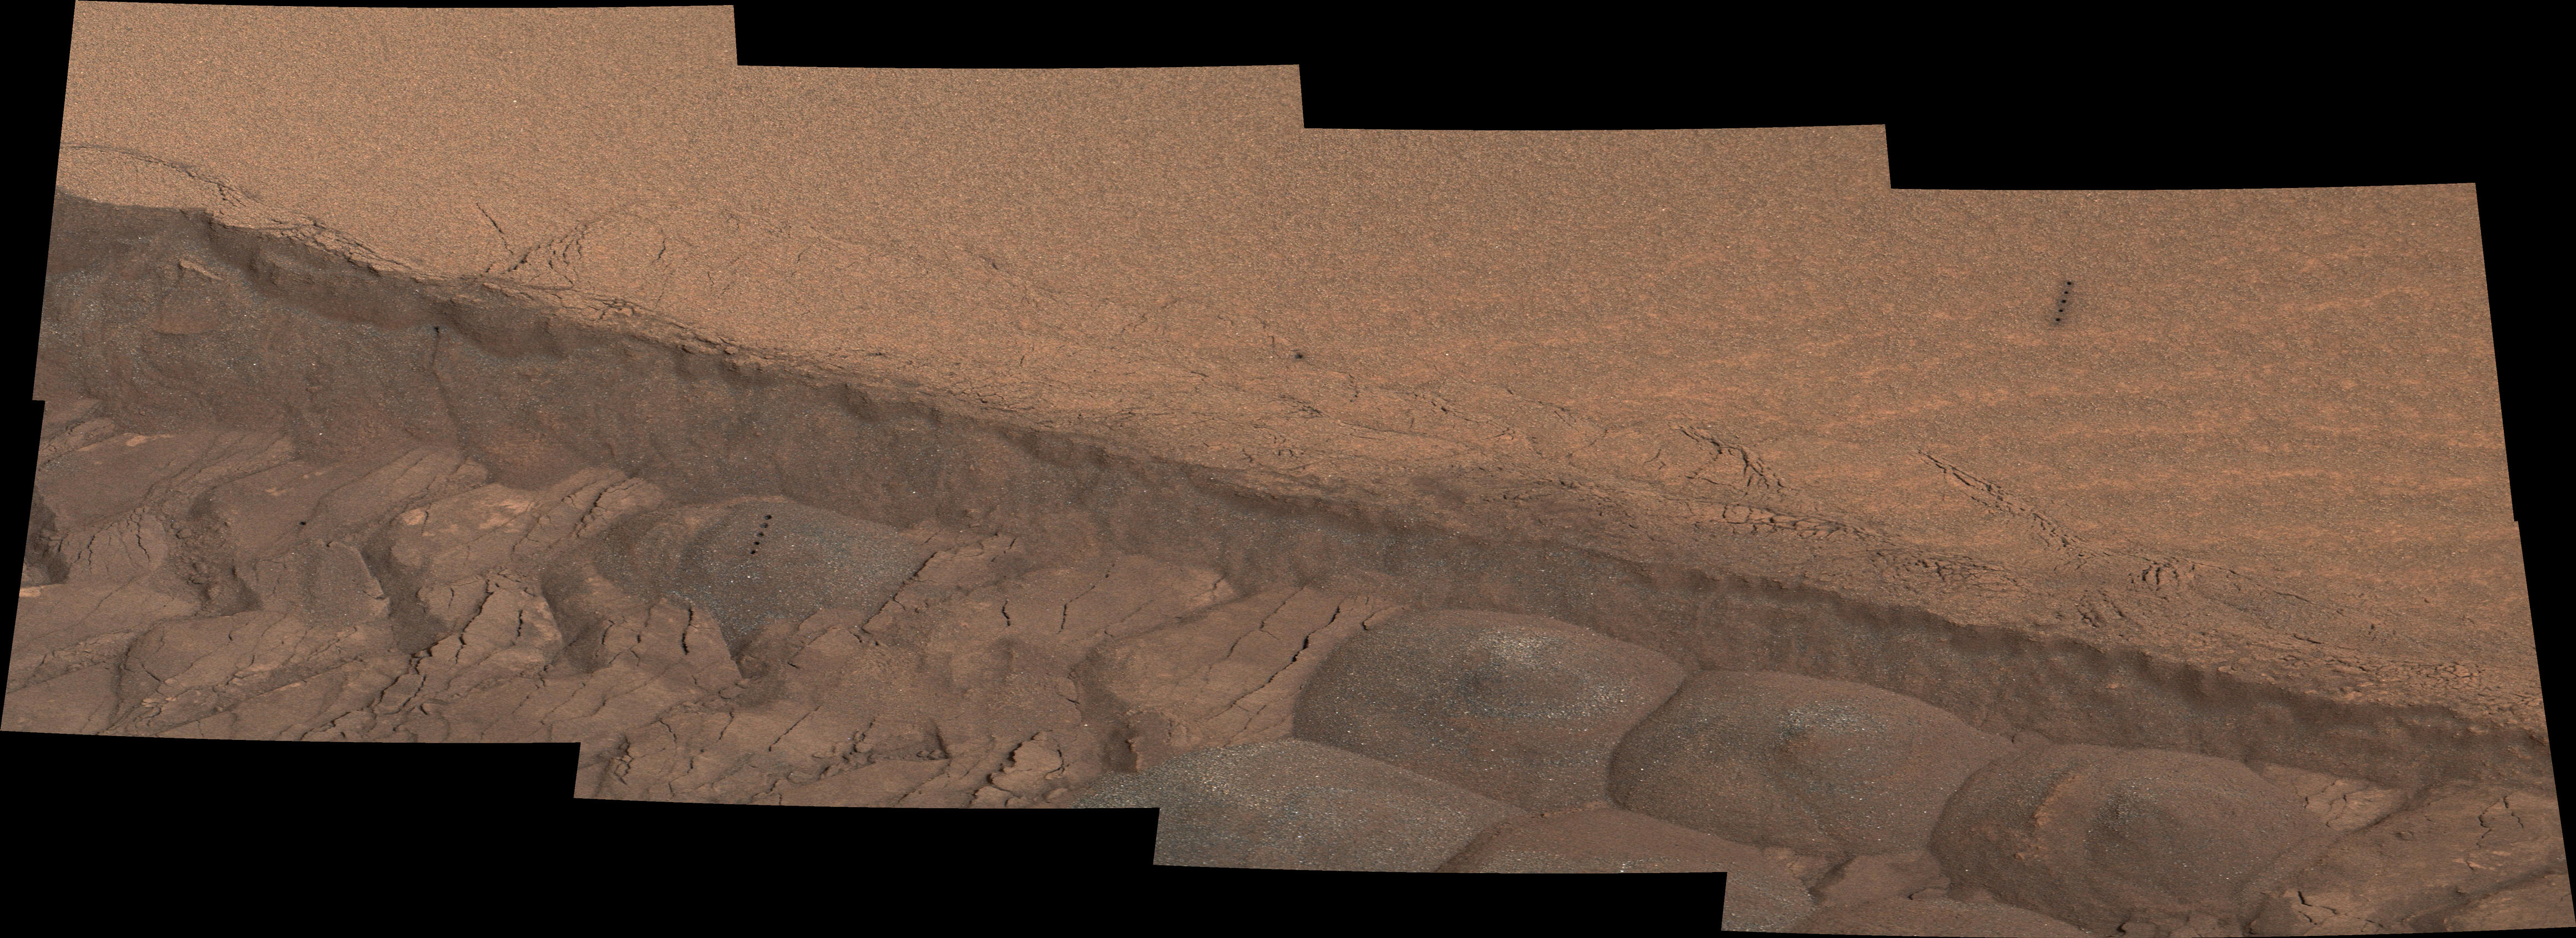 A wheel track cuts through a windblown ripple of dusty sand in this Nov. 7, 2014, image from the Mastcam on NASA's Curiosity rover. The view spans about four feet across. This experiment was planned for yielding a view of the inside of the ripple for assessment of particle sizes and composition.